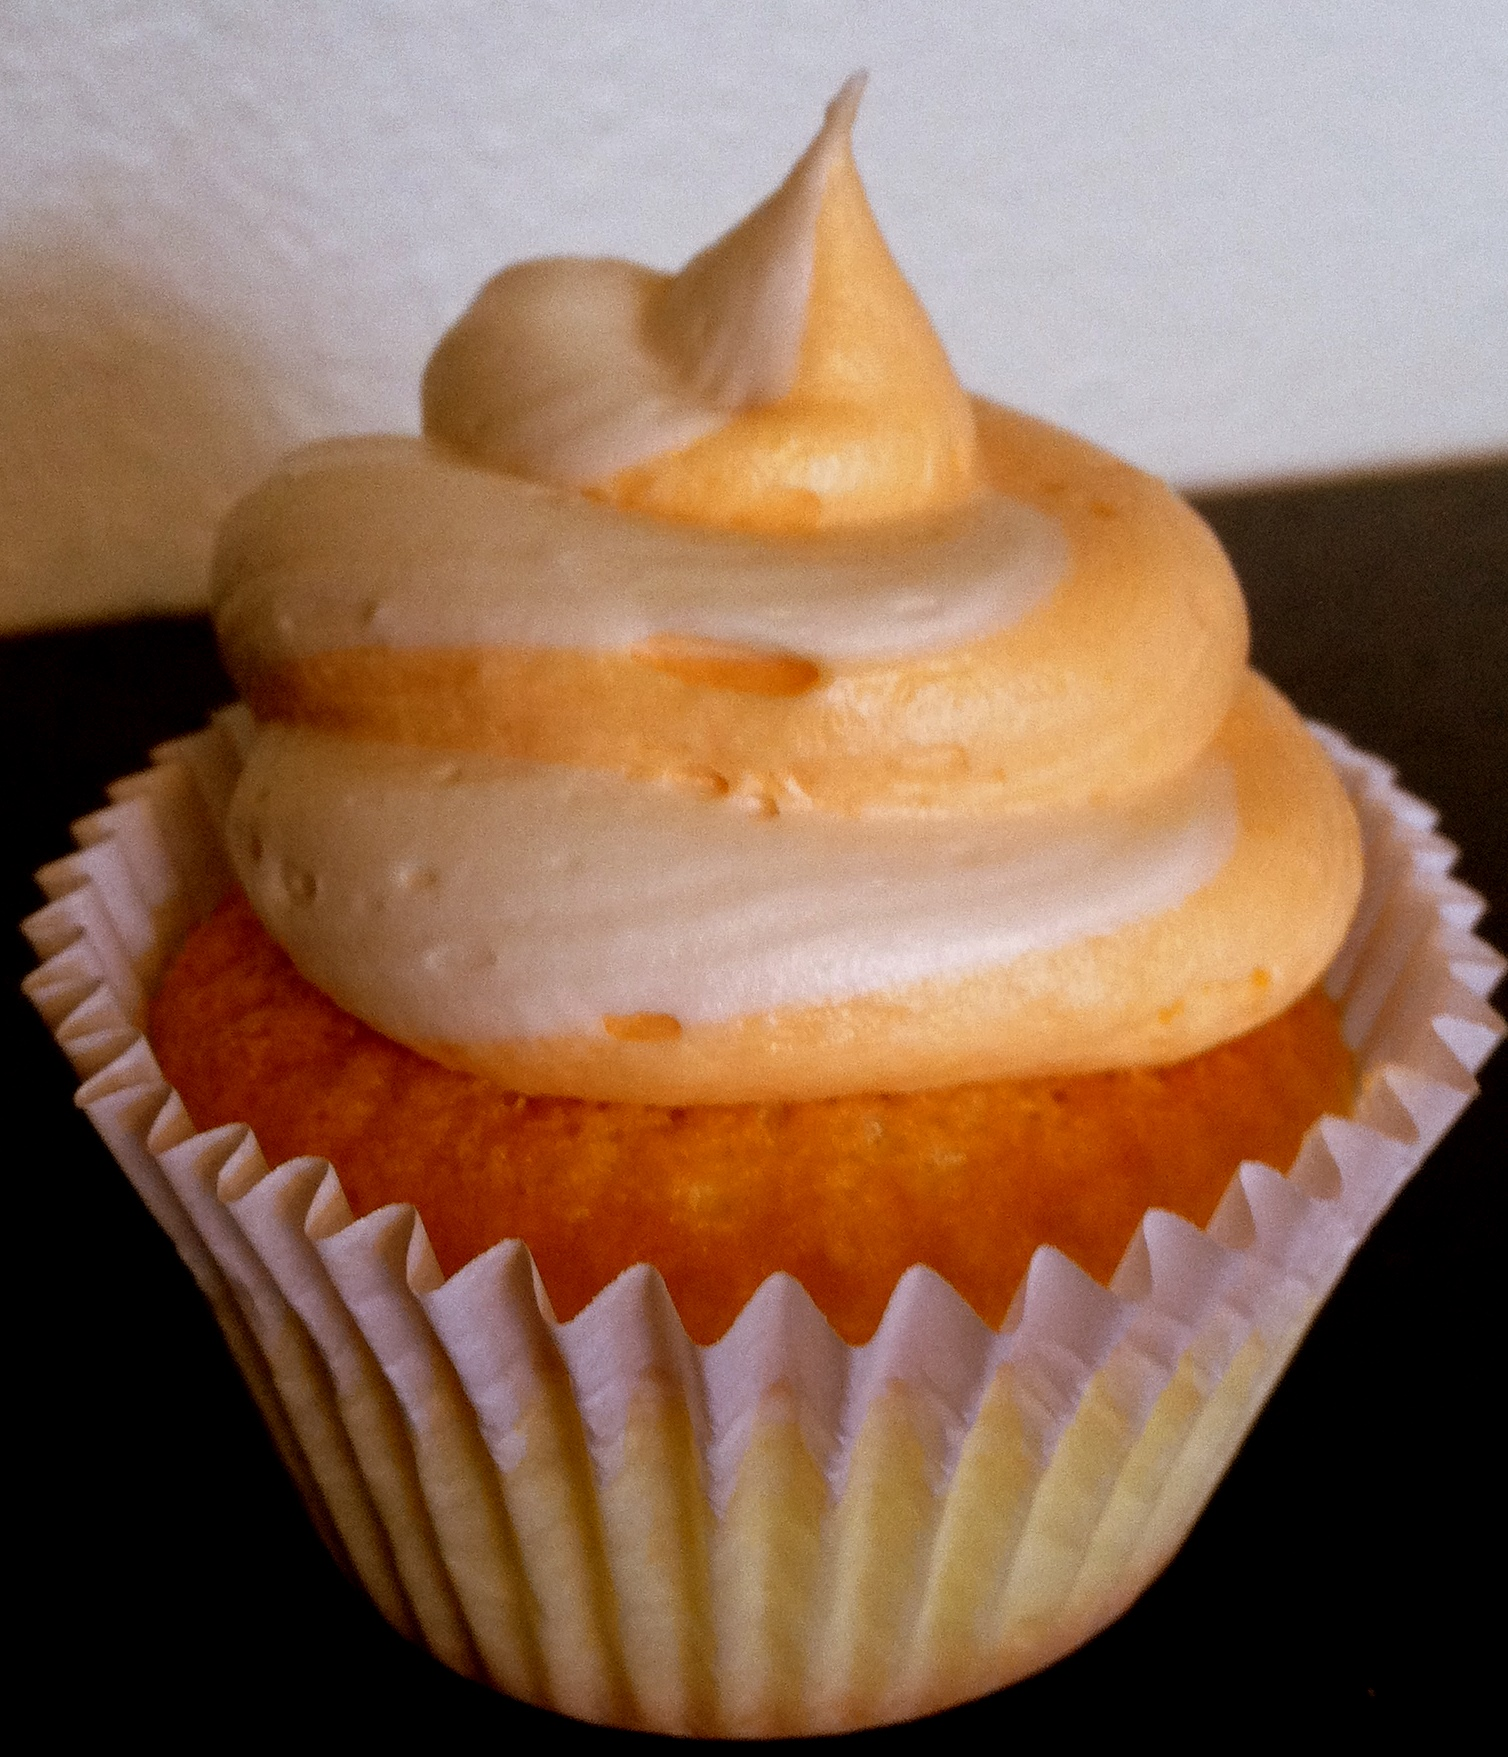 Orange Cupcakes with Buttercream Frosting